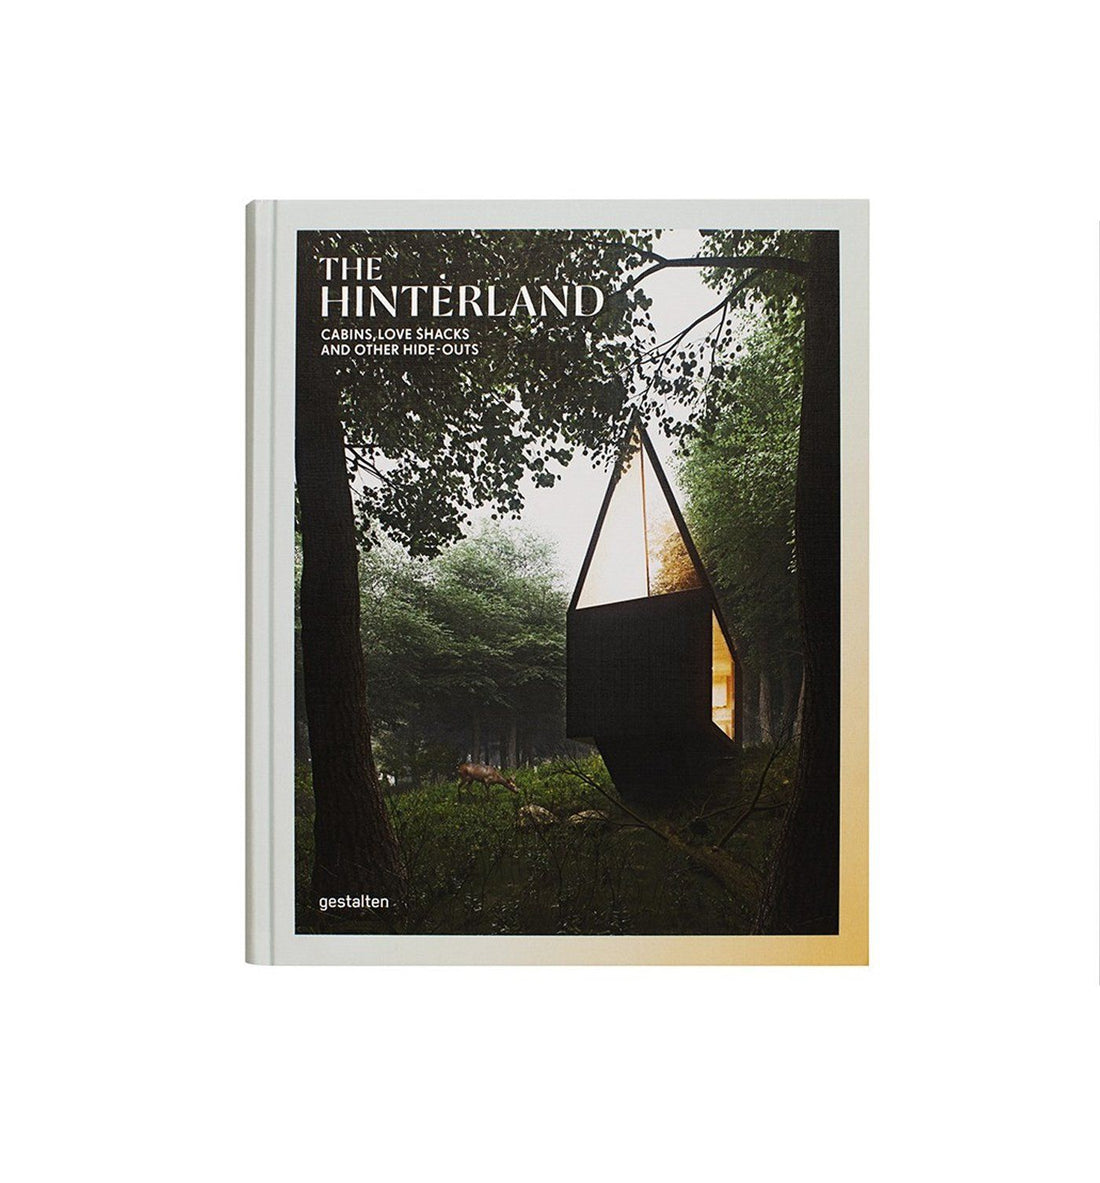 The Hinterland - Cabins, Love Shacks and Other Hide-Outs - Home Essentials - Iron and Resin